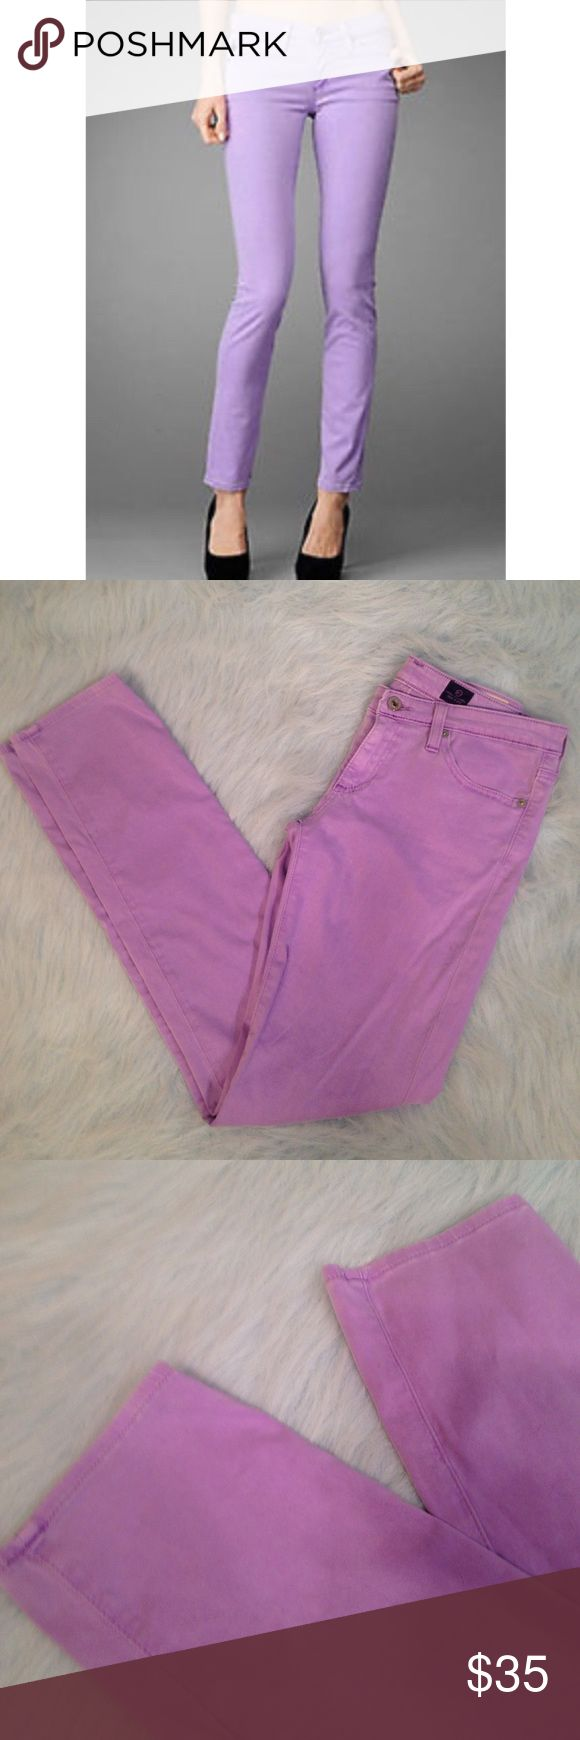 """AG 27 R The Stilt Cigarette Jeans Lavender Excellent used condition. No holes, stains, discoloration, snagging or pilling. Color is called highlighter purple. 80% Cotton 15% Modal 5% PU (no, I don't know what that is either). Very stretchy and soft. Waist 28"""". Length 37"""". Inseam 29 1/2"""". Ag Adriano Goldschmied Jeans Skinny"""